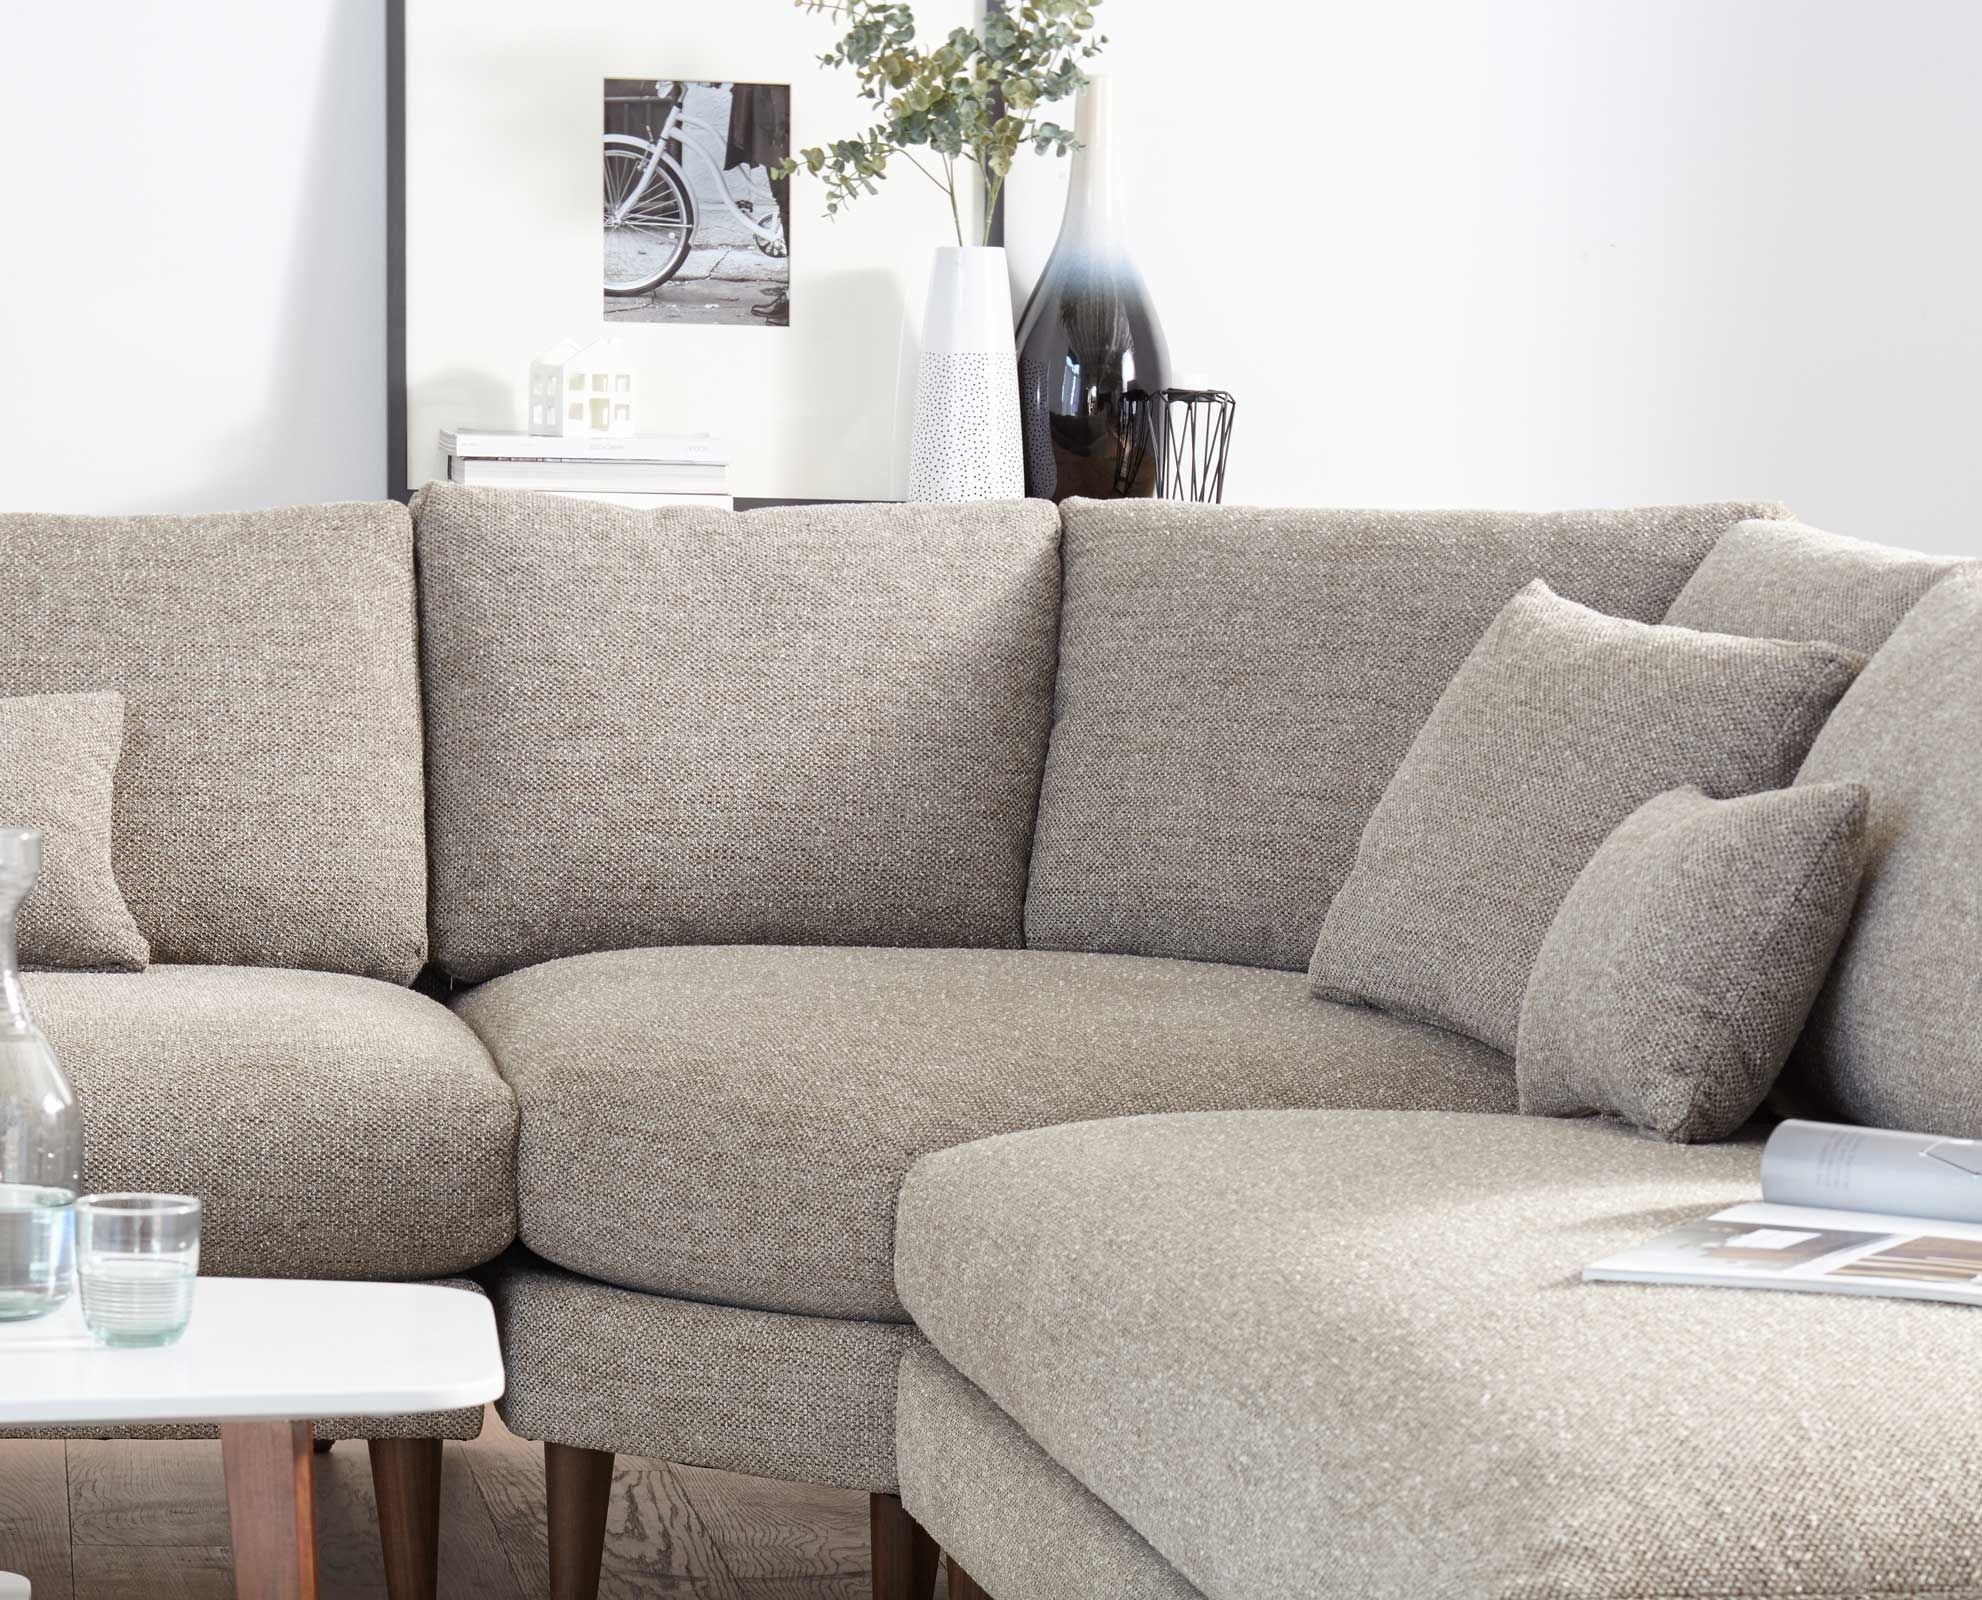 big soft comfy sofas martino leather chaise sectional sofa the grand hugo from scandinavian designs is a